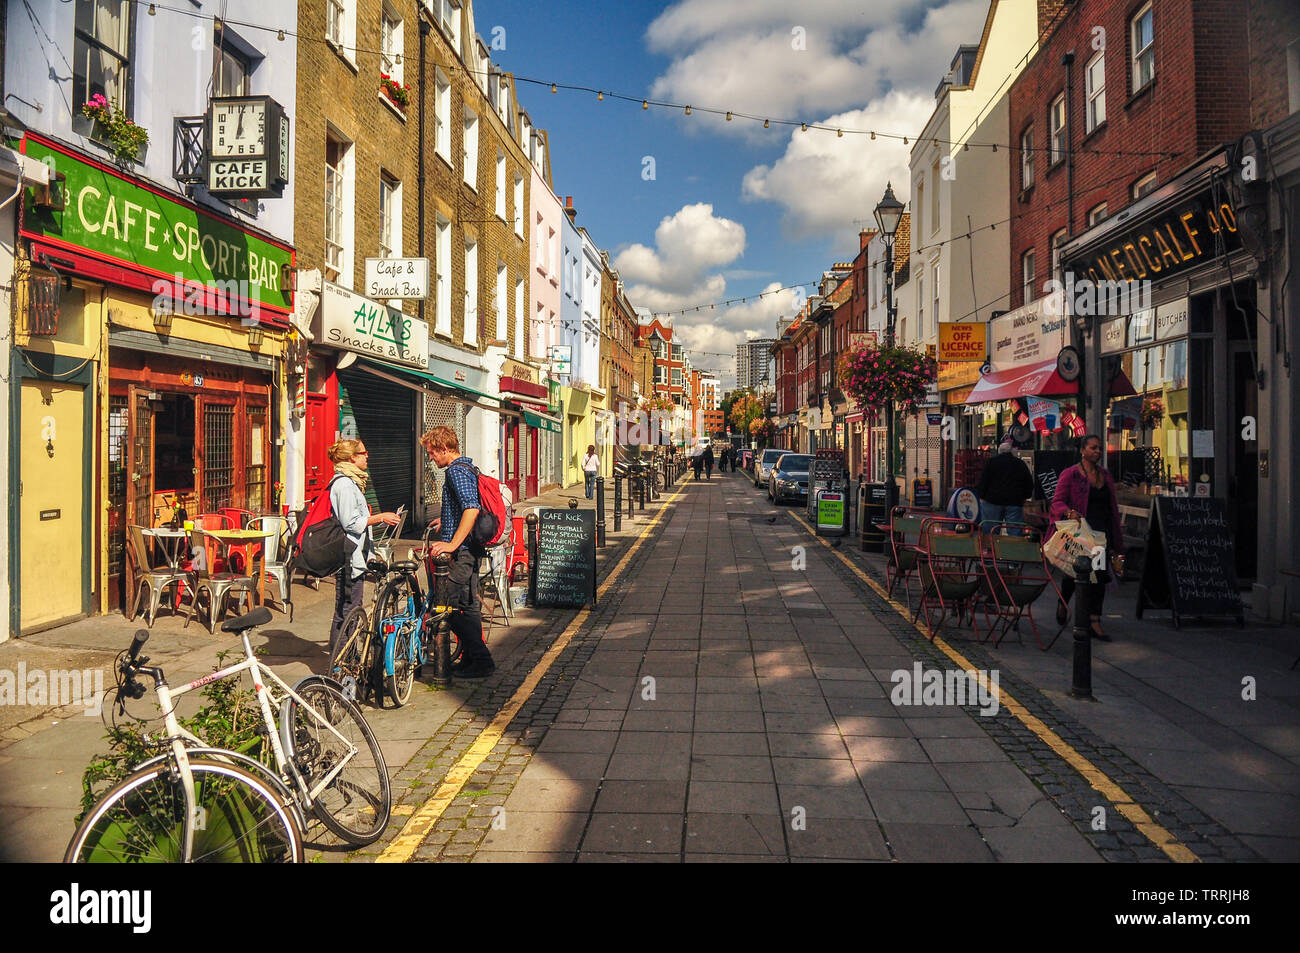 London, England, UK - September 18, 2011: Sun shines on the independent shops and cafes of Exmouth Market in central London. Stock Photo